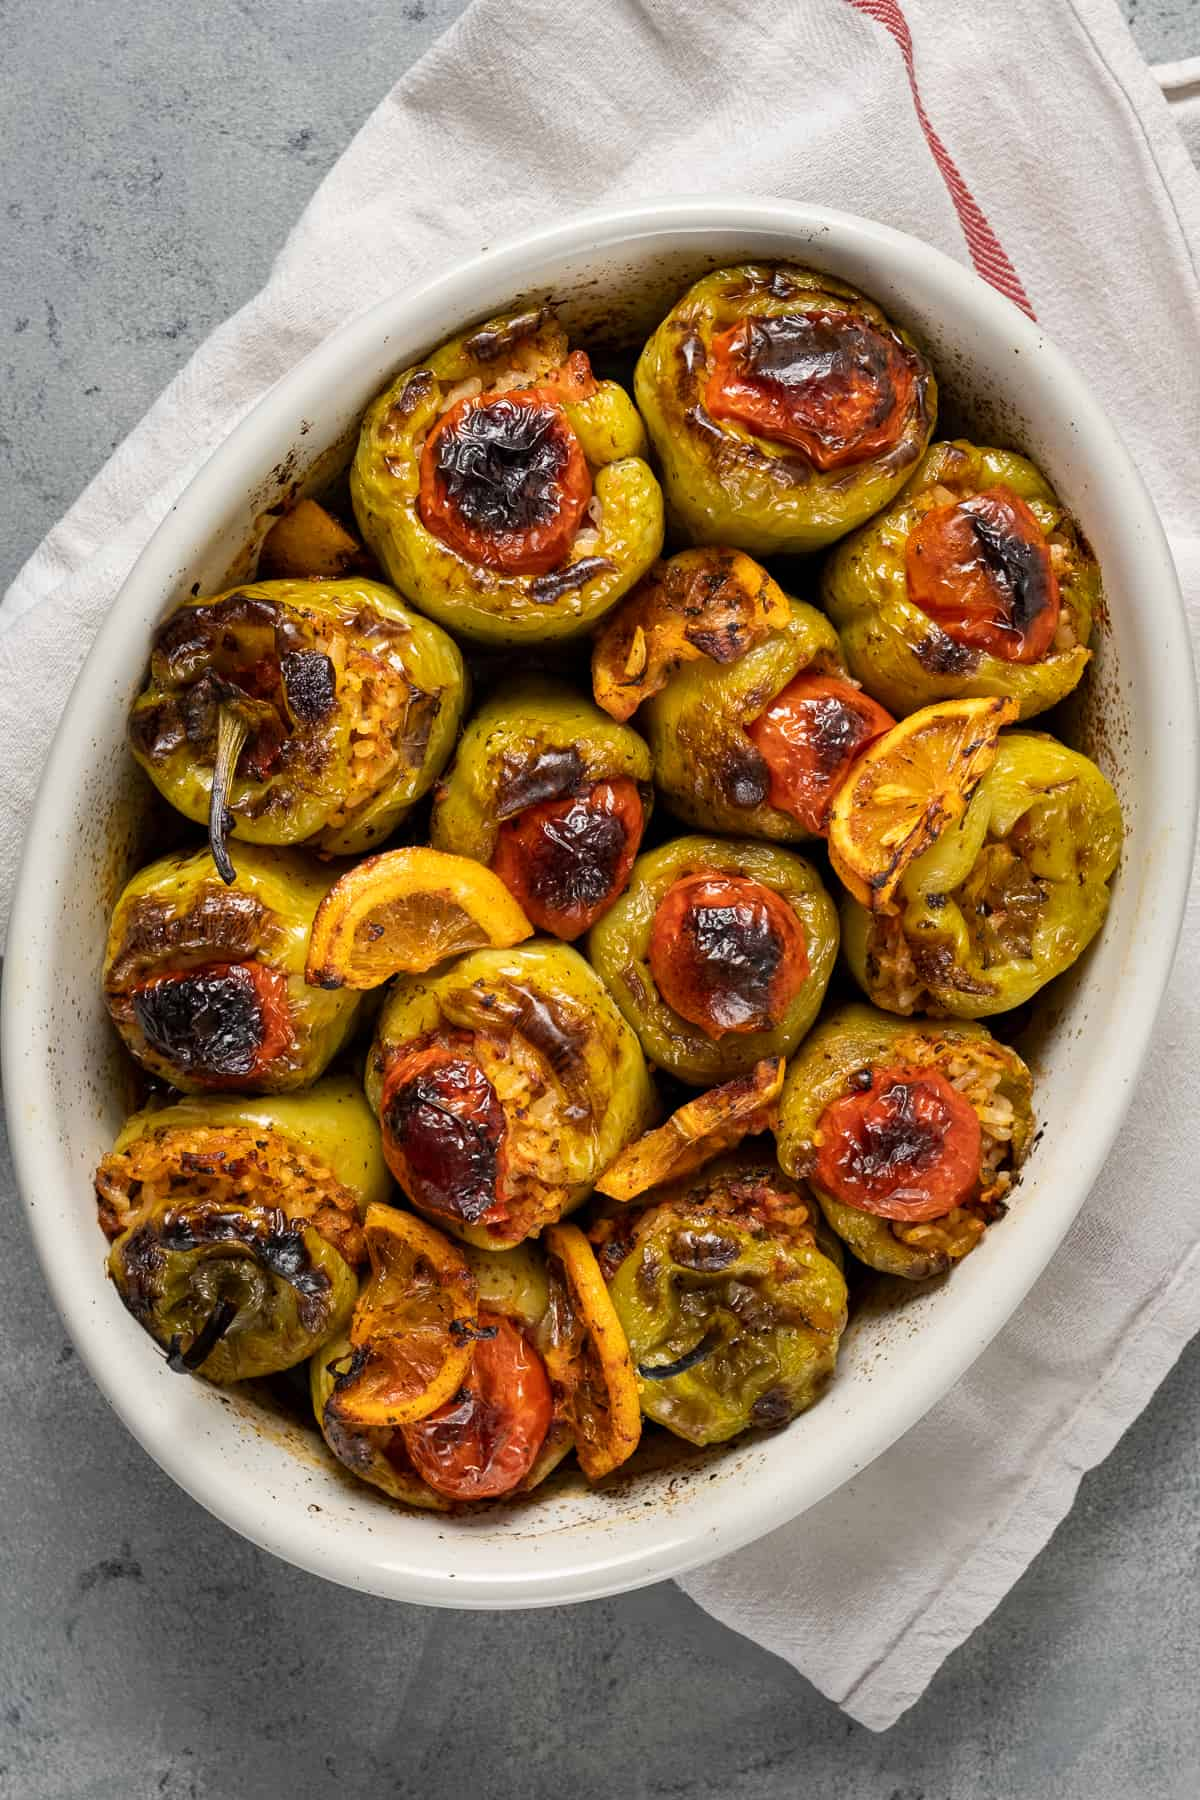 Baked rice stuffed green peppers in a white oval baking pan.